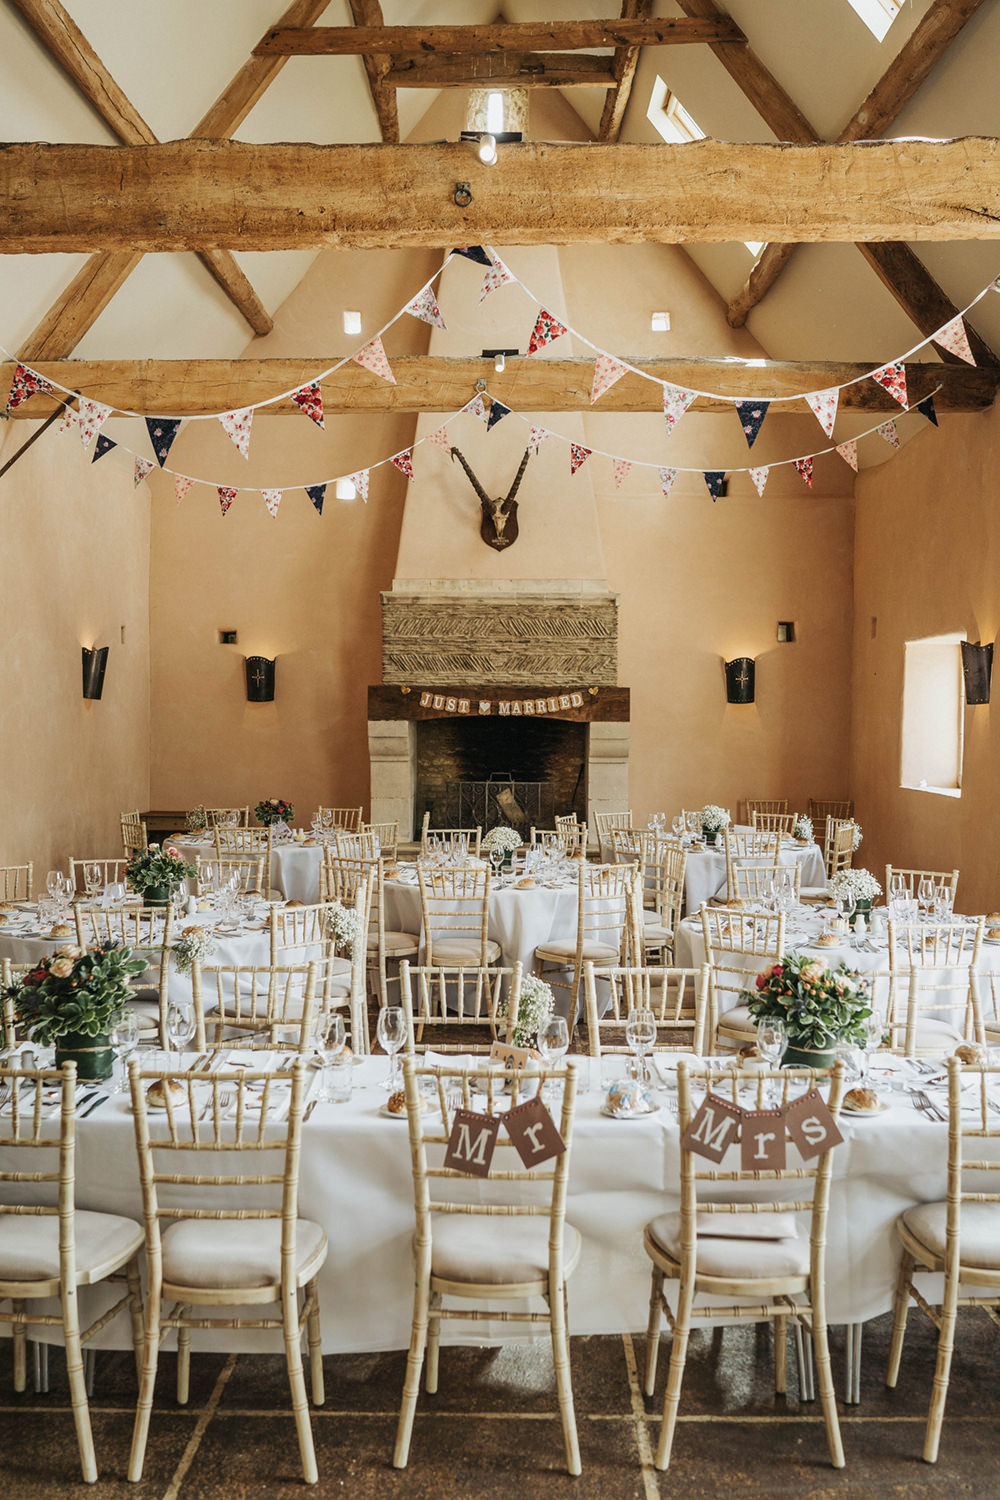 Oxleaze Barn Venue Reception Chairs Fireplace Bunting Round Tables Boho Country Wedding Kit Myers Photography